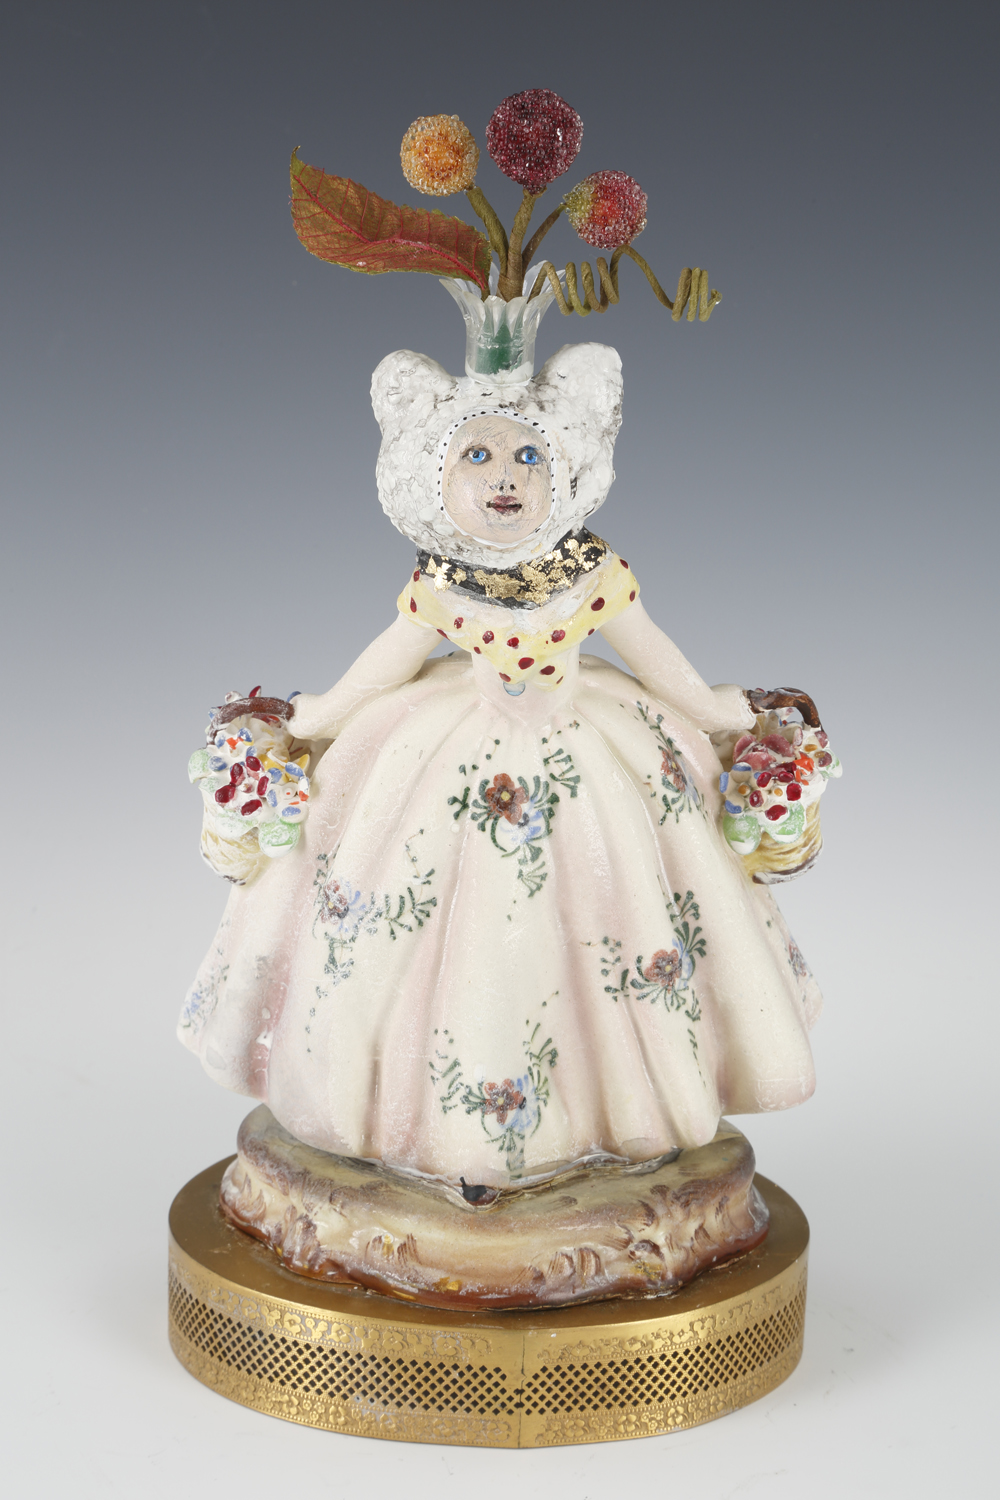 """Amelia"" by Gayle Cerlan, Clay, glaze, paint, found objects, 10x6x6.4,5in, 2018, $850"